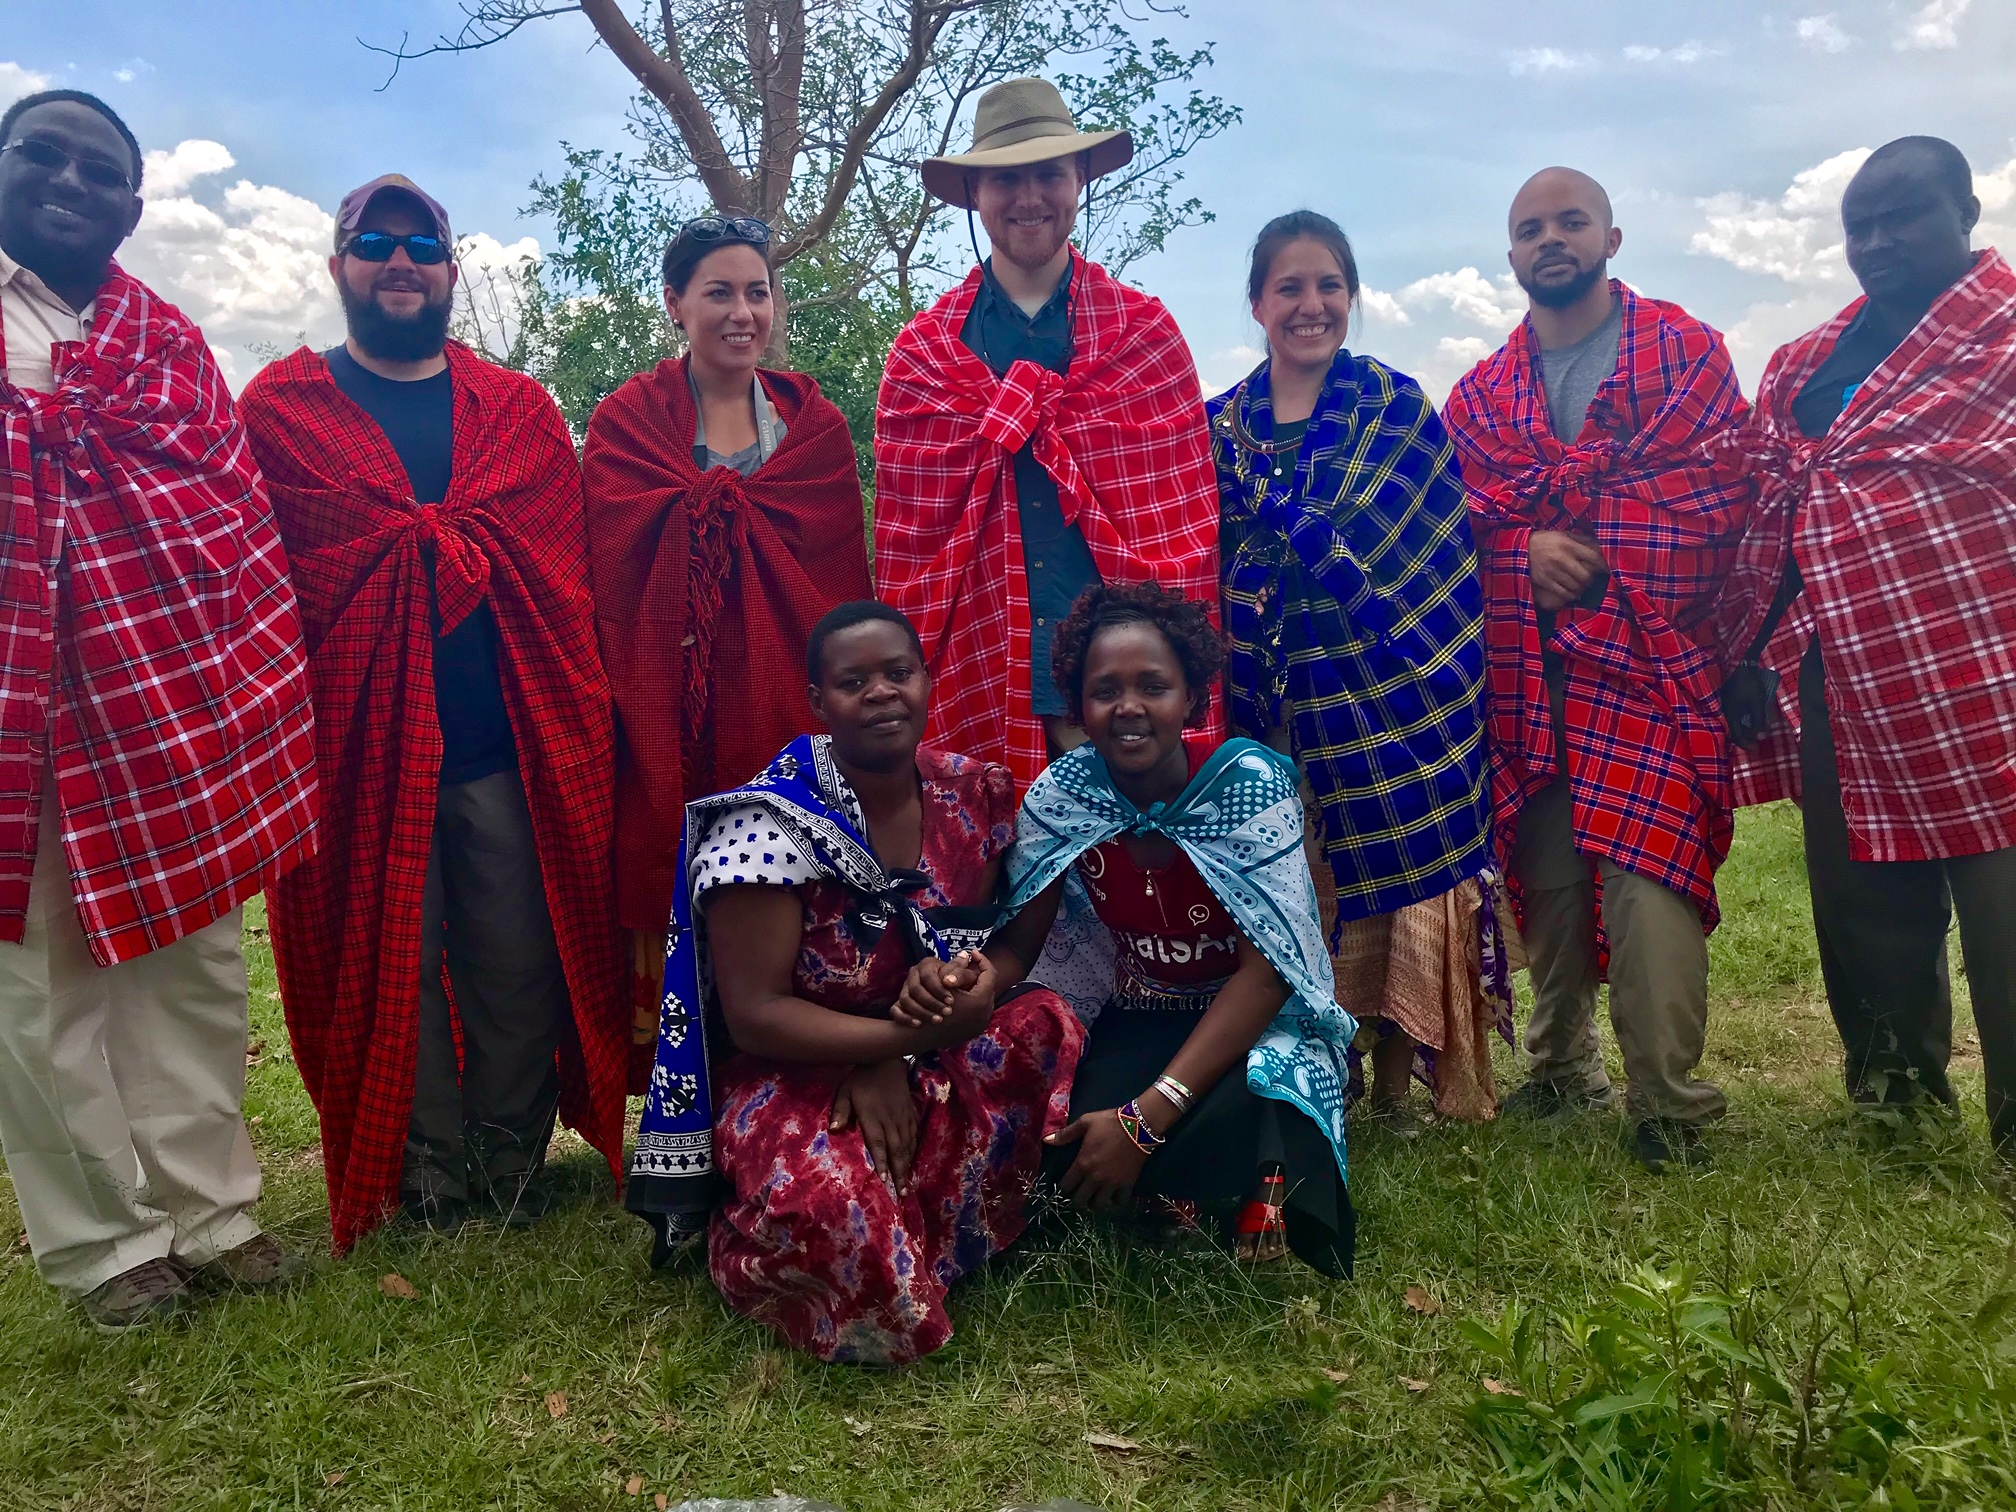 The Maasai tribe gifted us these traditional shukas, which basically means we're one of their own now :)  If I move to Kenya, it will definitely be to live amongst the Maasai!